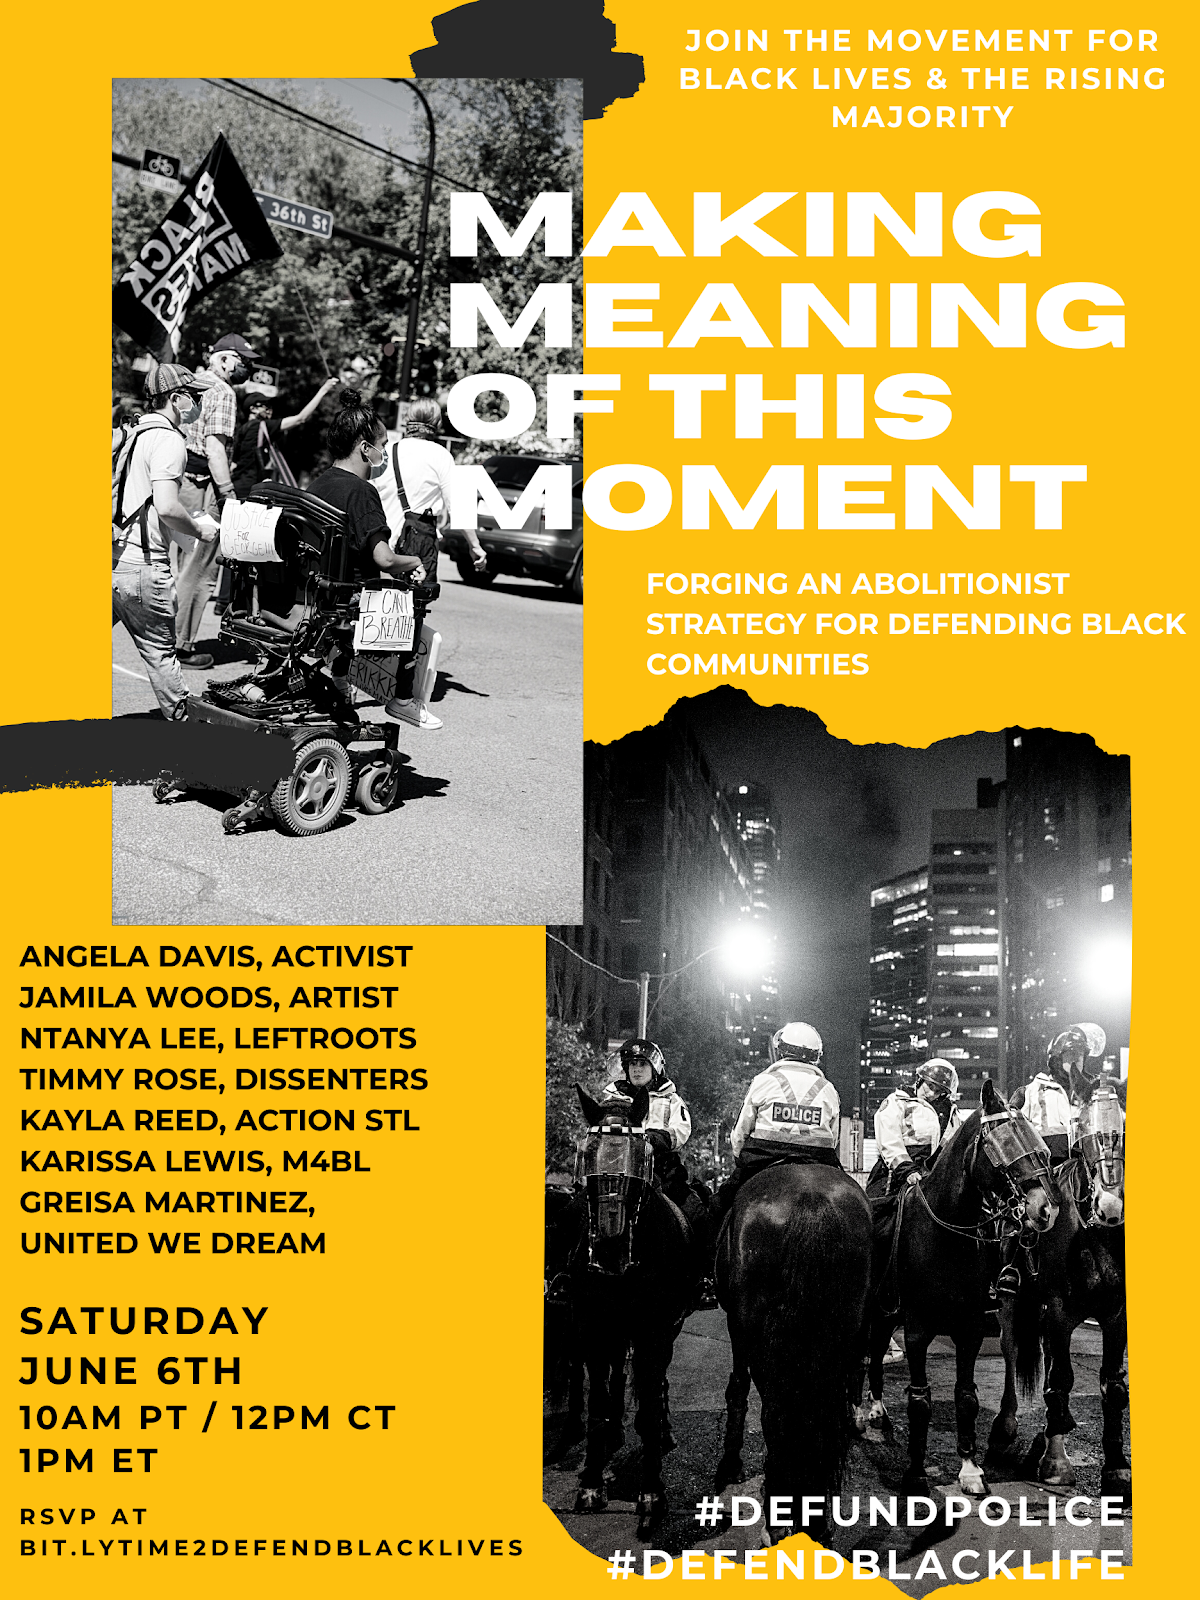 Making Meaning of this Movement event image